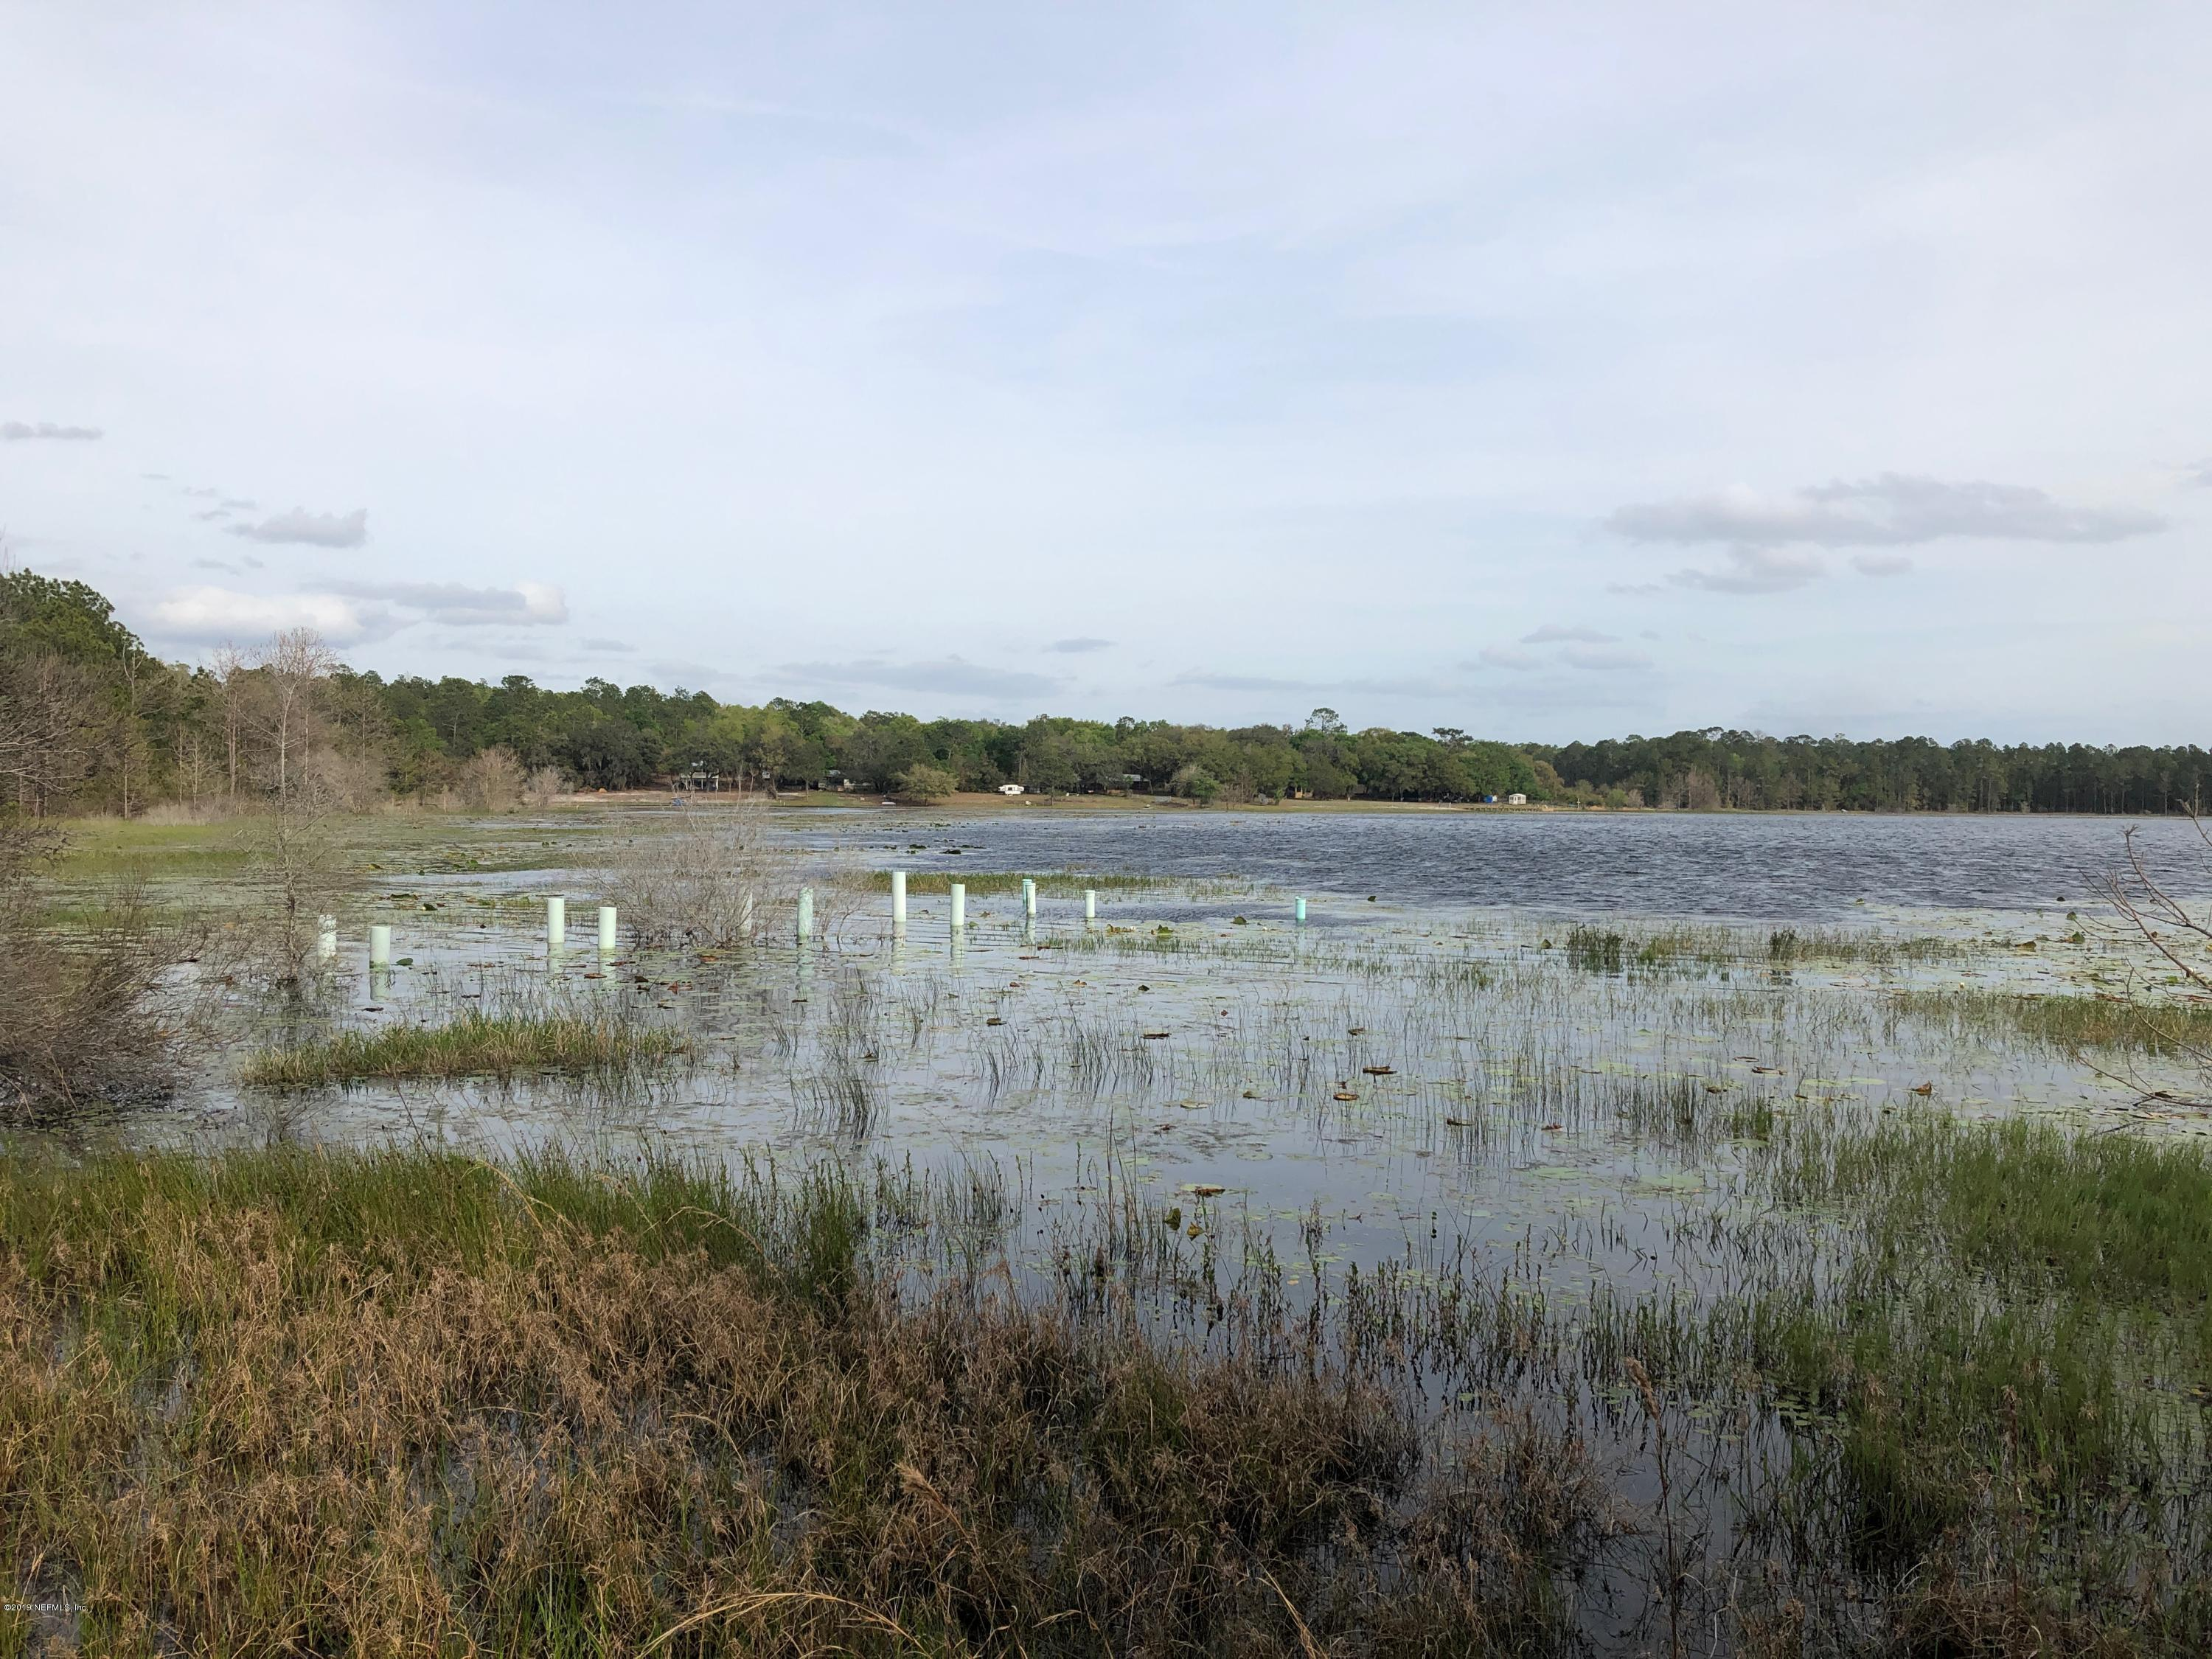 000 LAKEVIEW, HAWTHORNE, FLORIDA 32640, ,Vacant land,For sale,LAKEVIEW,984596